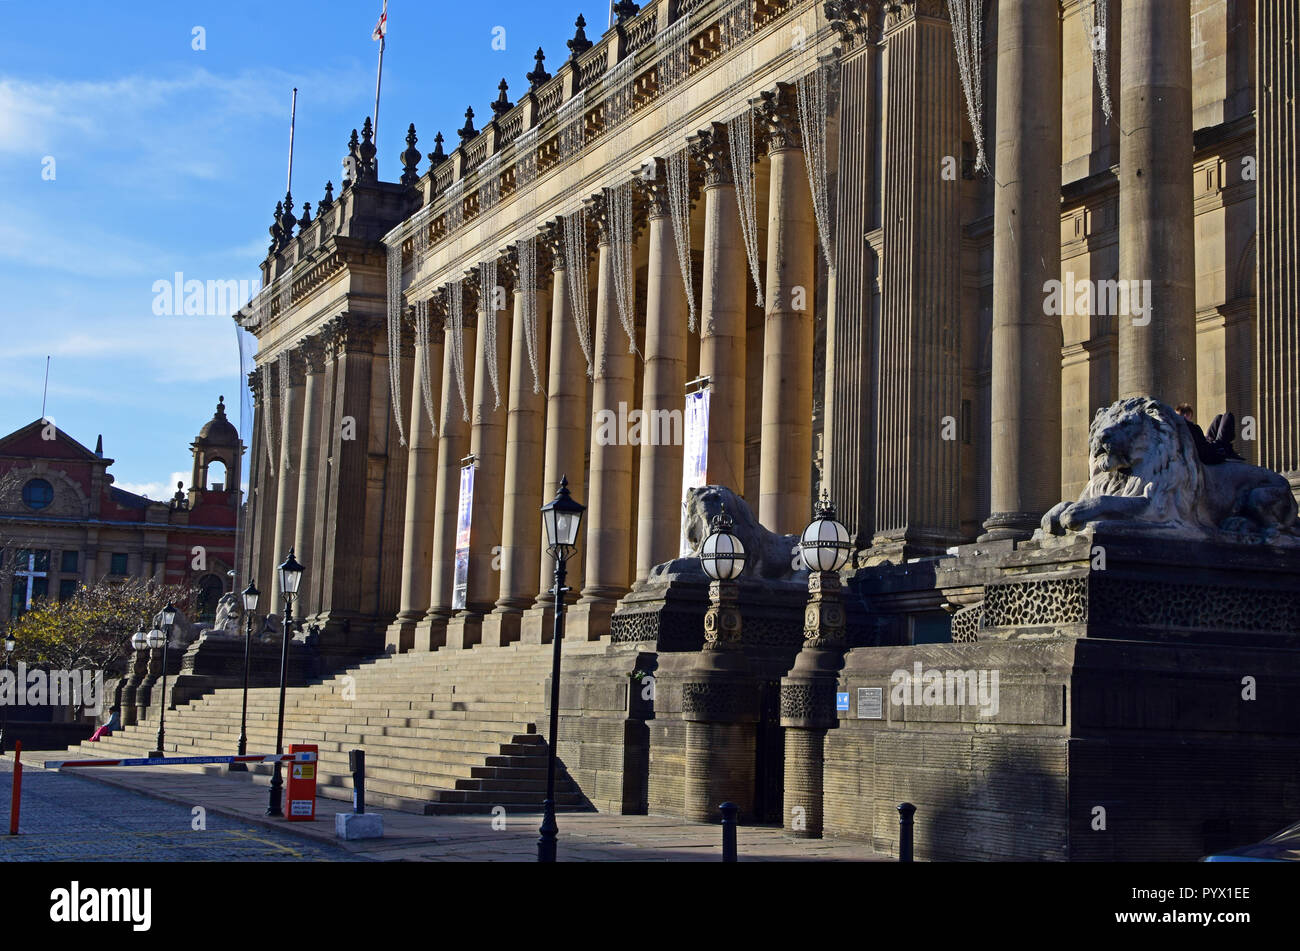 Leeds city town hall, West Yorkshire - Stock Image